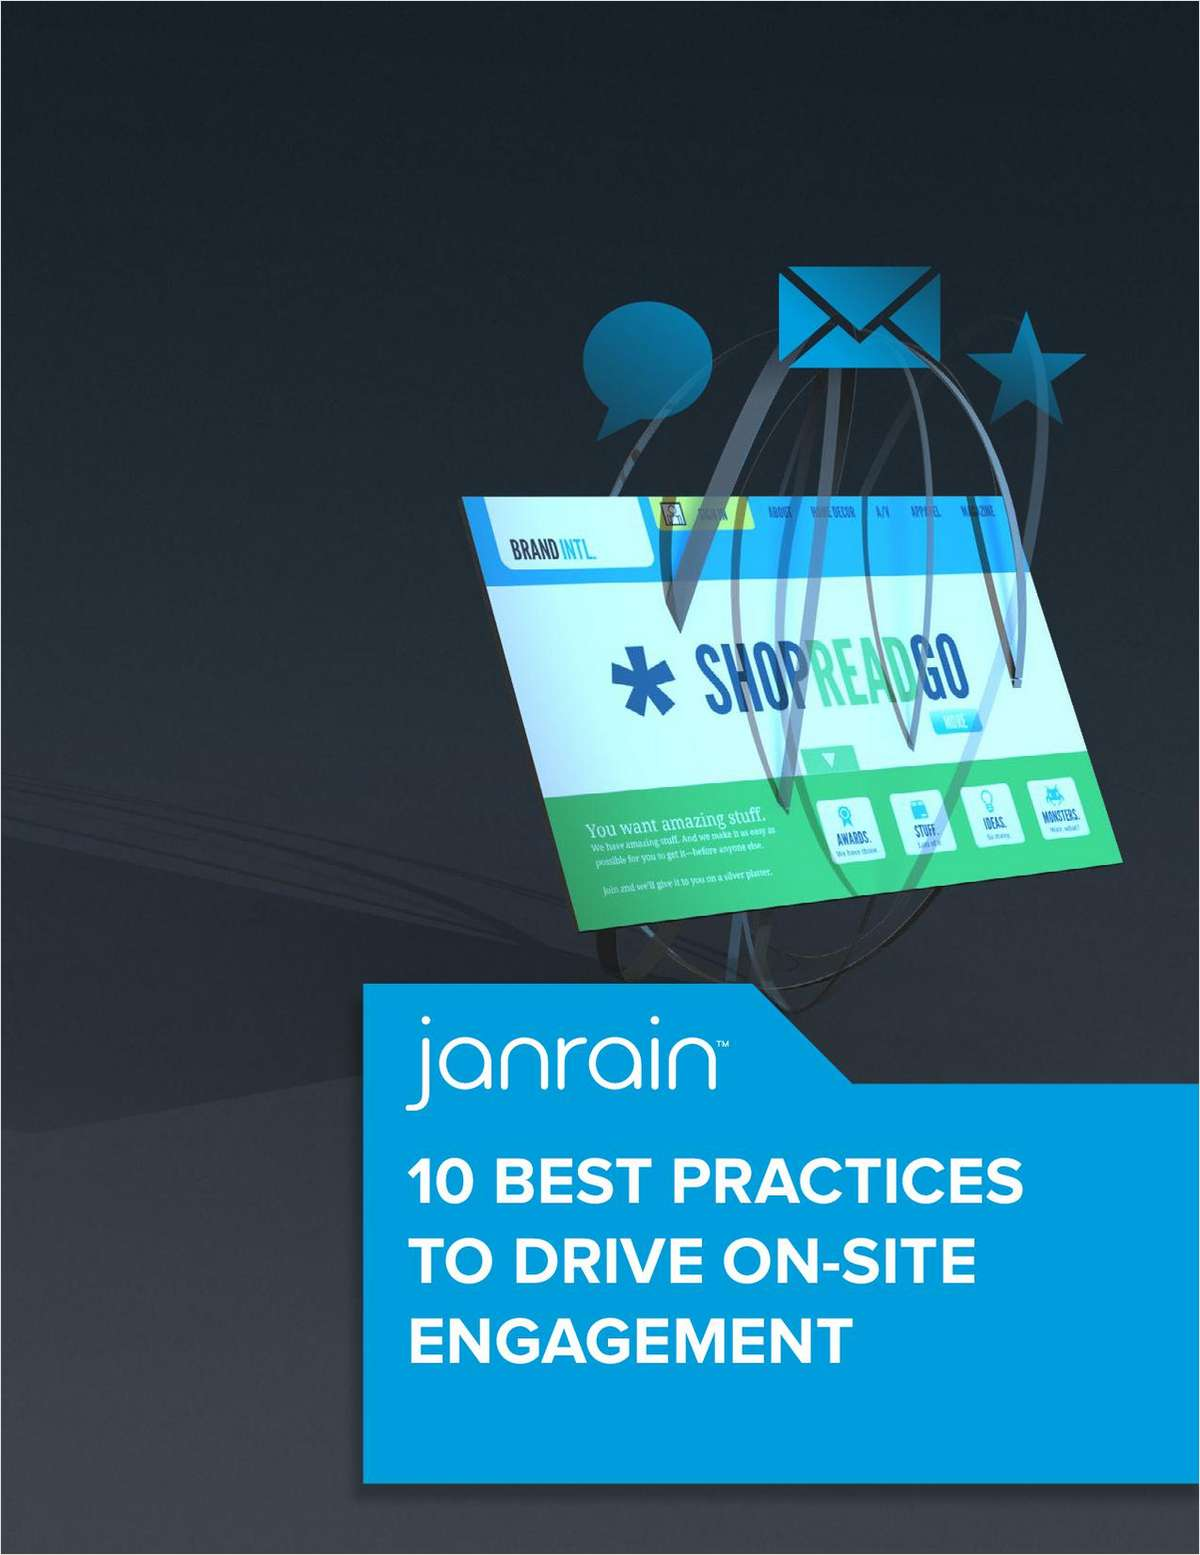 10 Best Practices to Drive On-Site Engagement